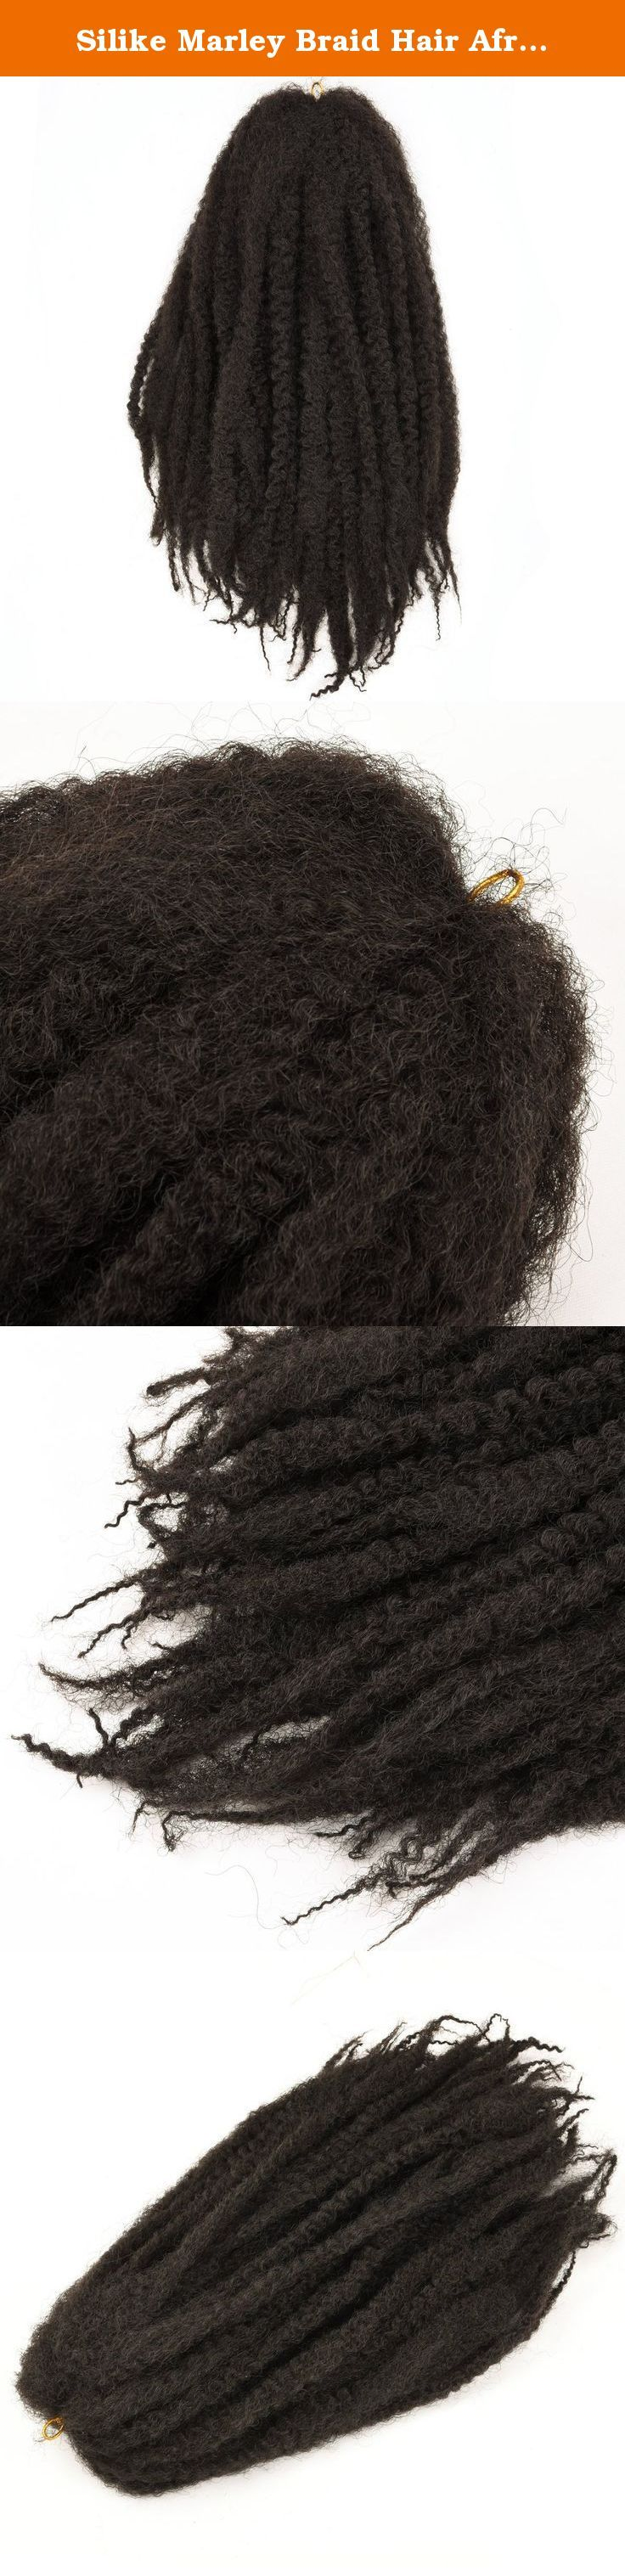 Silike Marley Braid Hair Afro Kinky Twist Crochet Braids (1 Pack) (#2). Item Type: Marley Braid Length: 18inch folded Weight: 100g±5g Packaging: 1 Pack( 30 strands opend/ 60 strands folded/pack).